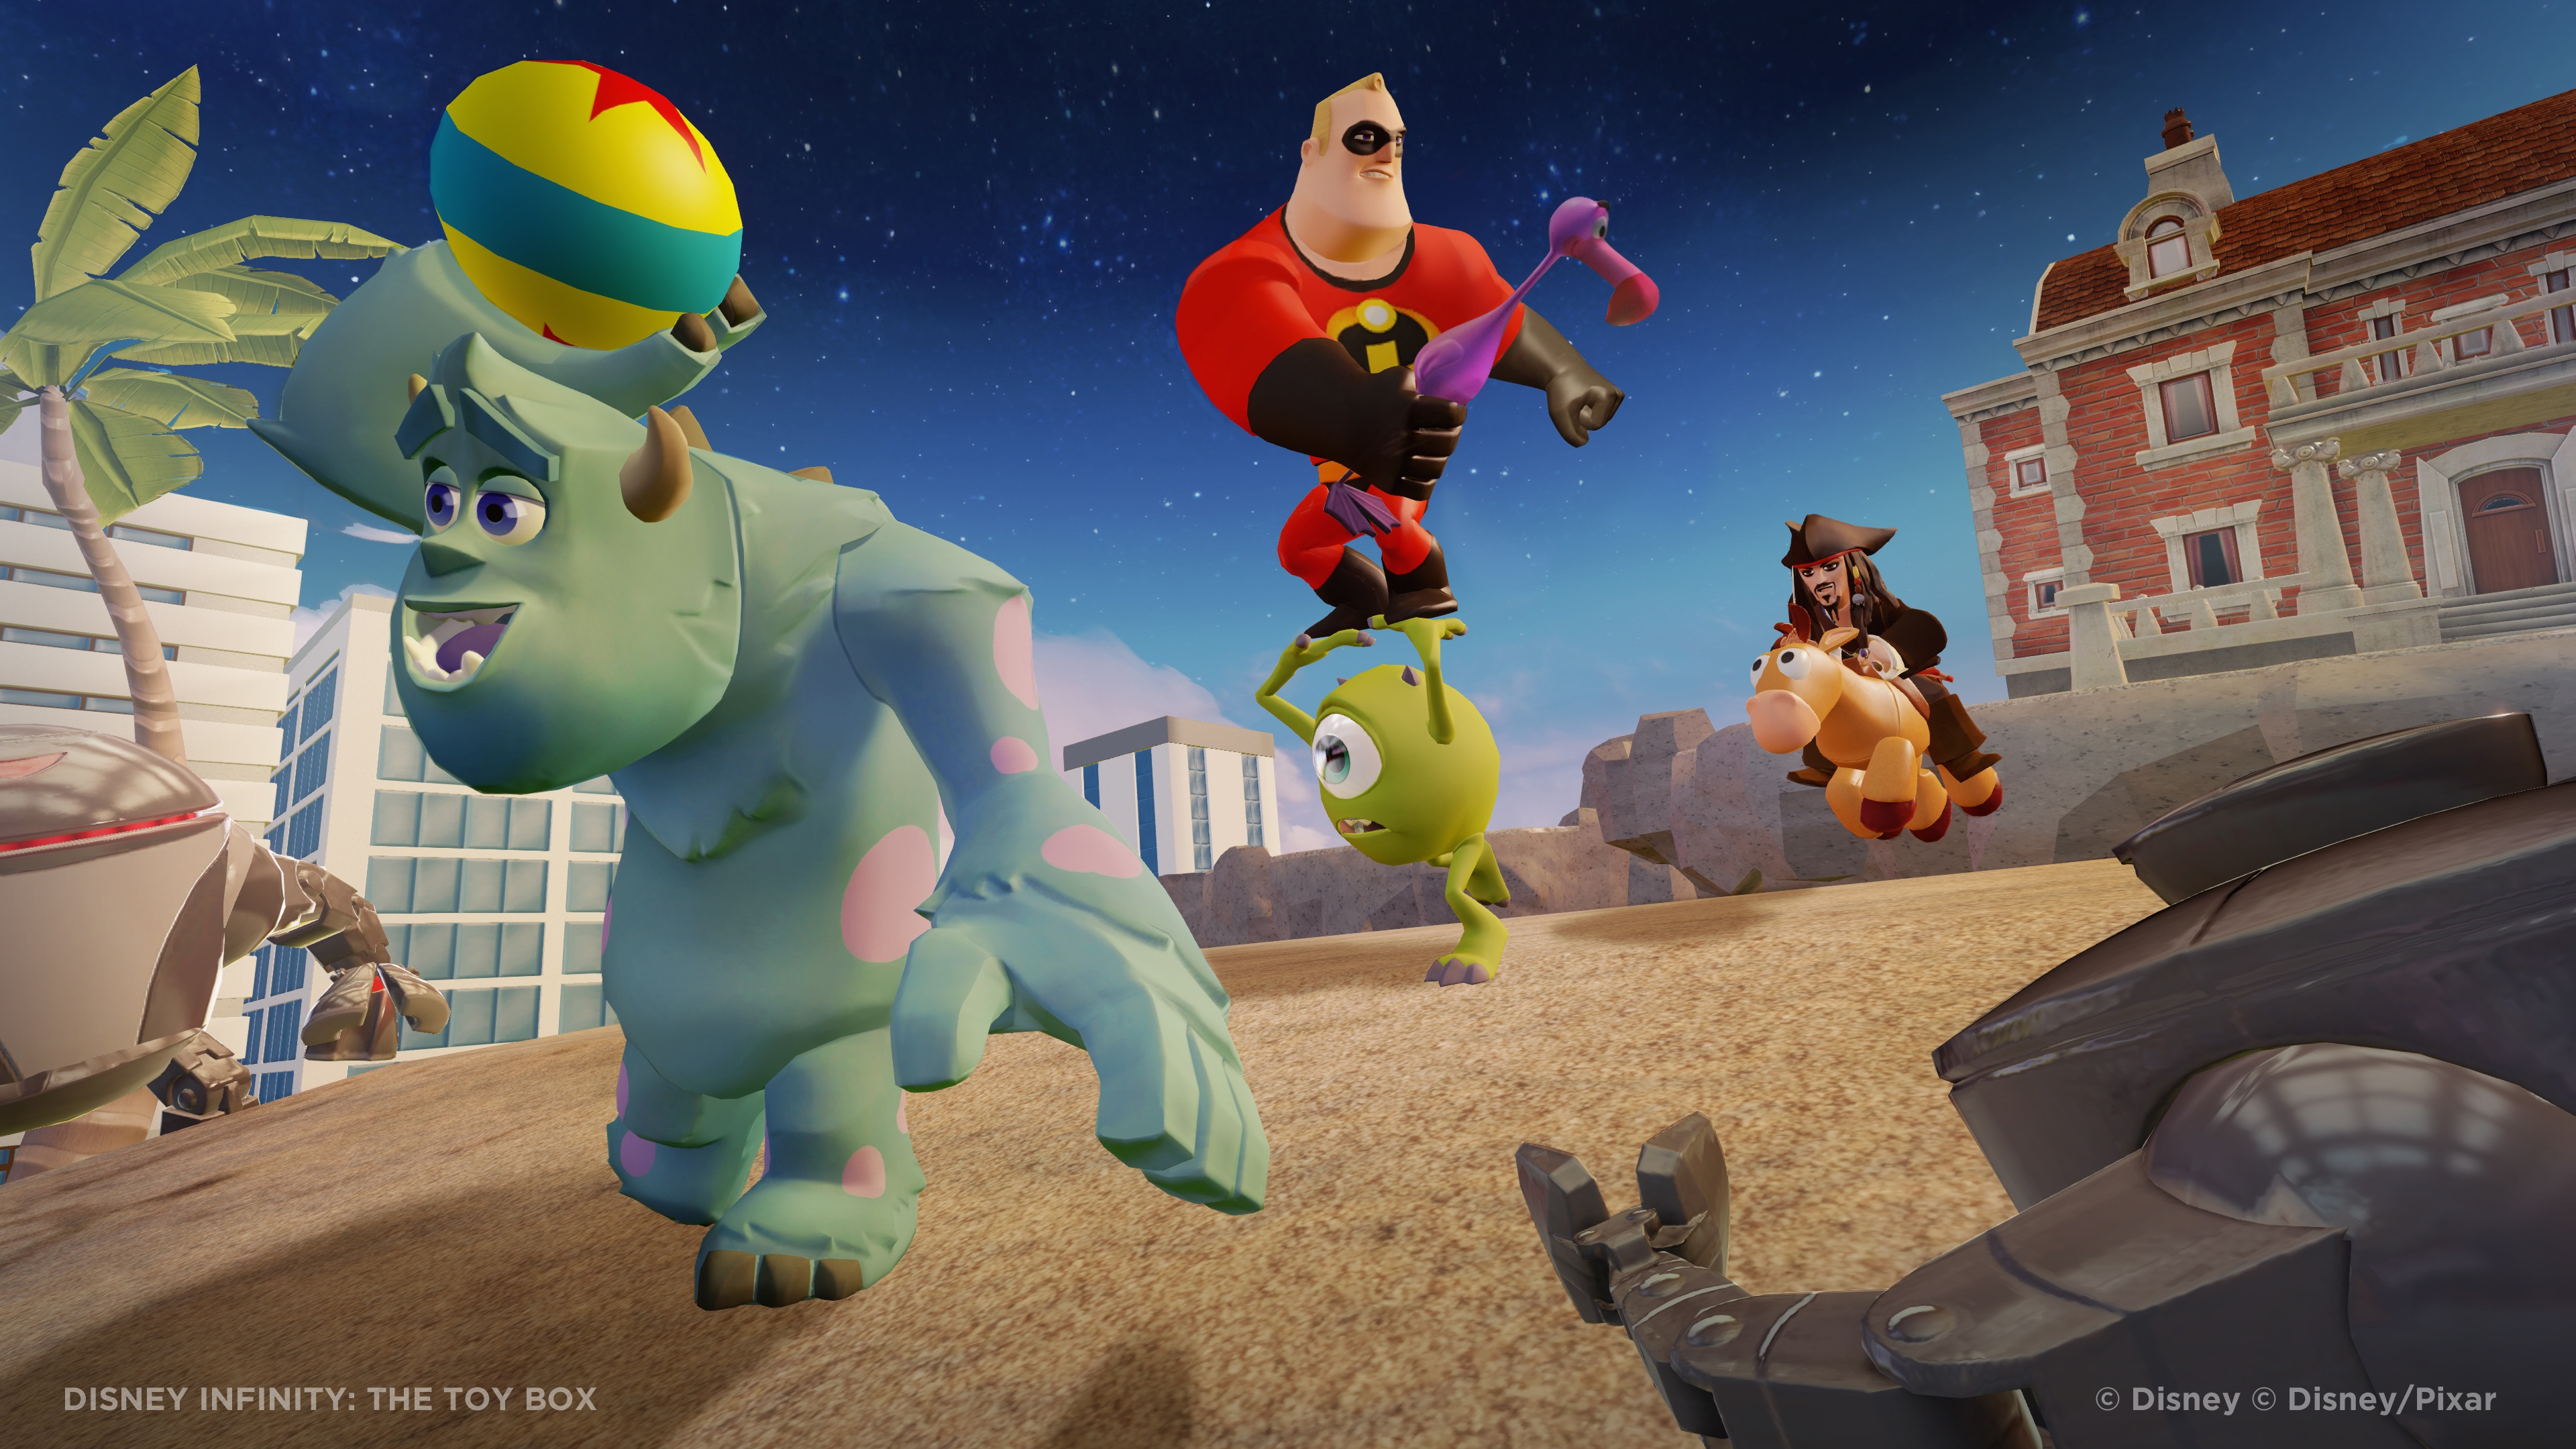 Ambitious 'Disney Infinity' Game Unveiled